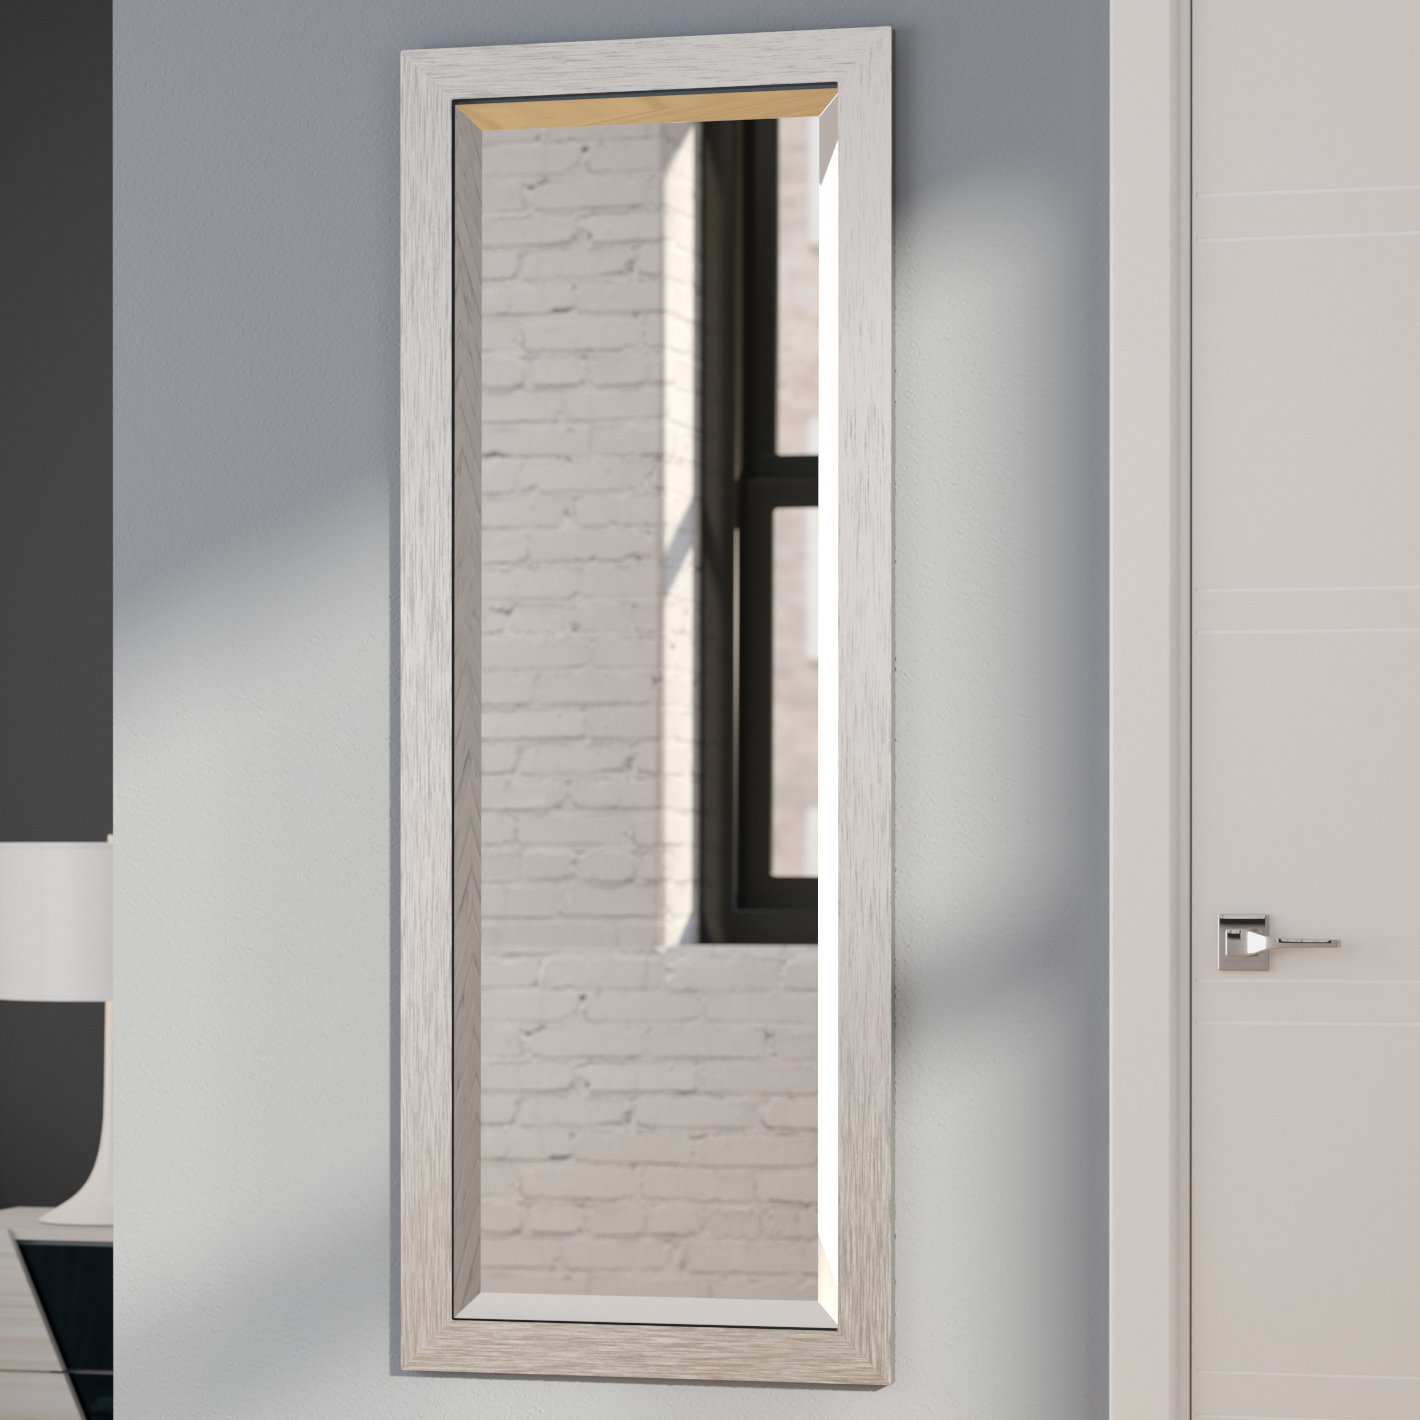 Modern & Contemporary Full Length Beveled Wall Mirror Intended For Modern & Contemporary Full Length Mirrors (Photo 2 of 20)